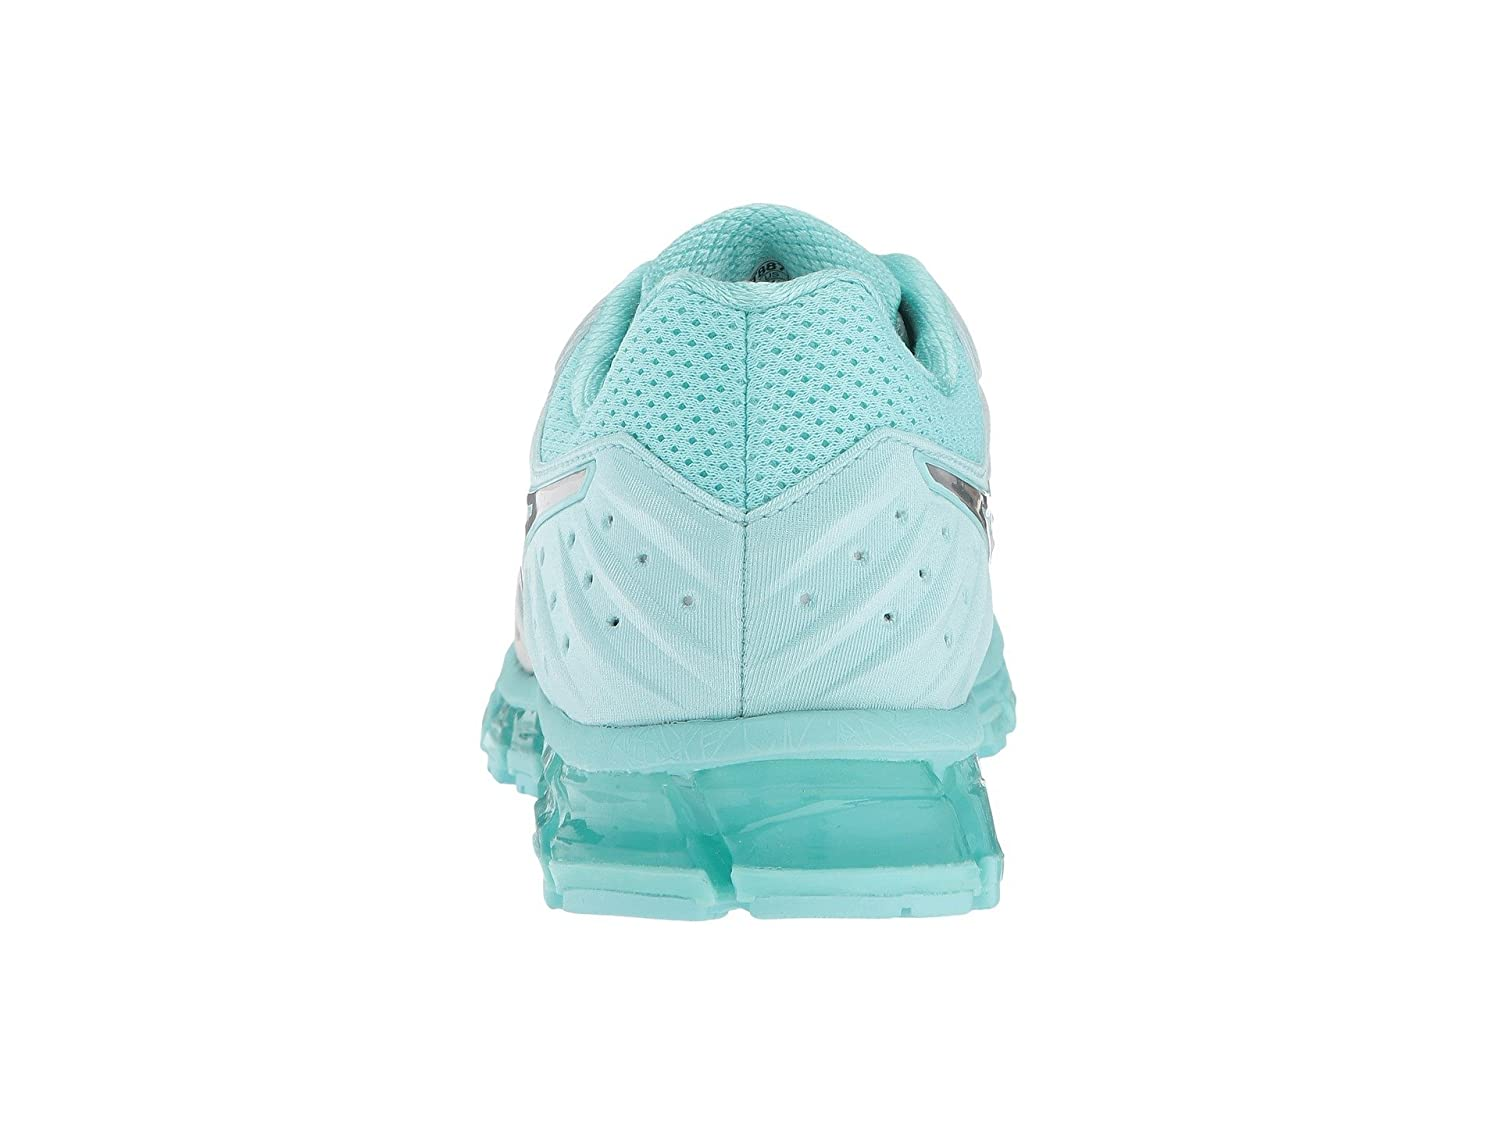 ASICS Gel-Quantum 180 2 MX Women's Running B072J31M3N 7.5 B(M) US|Mid Grey/Aruba Blue/Mid Grey